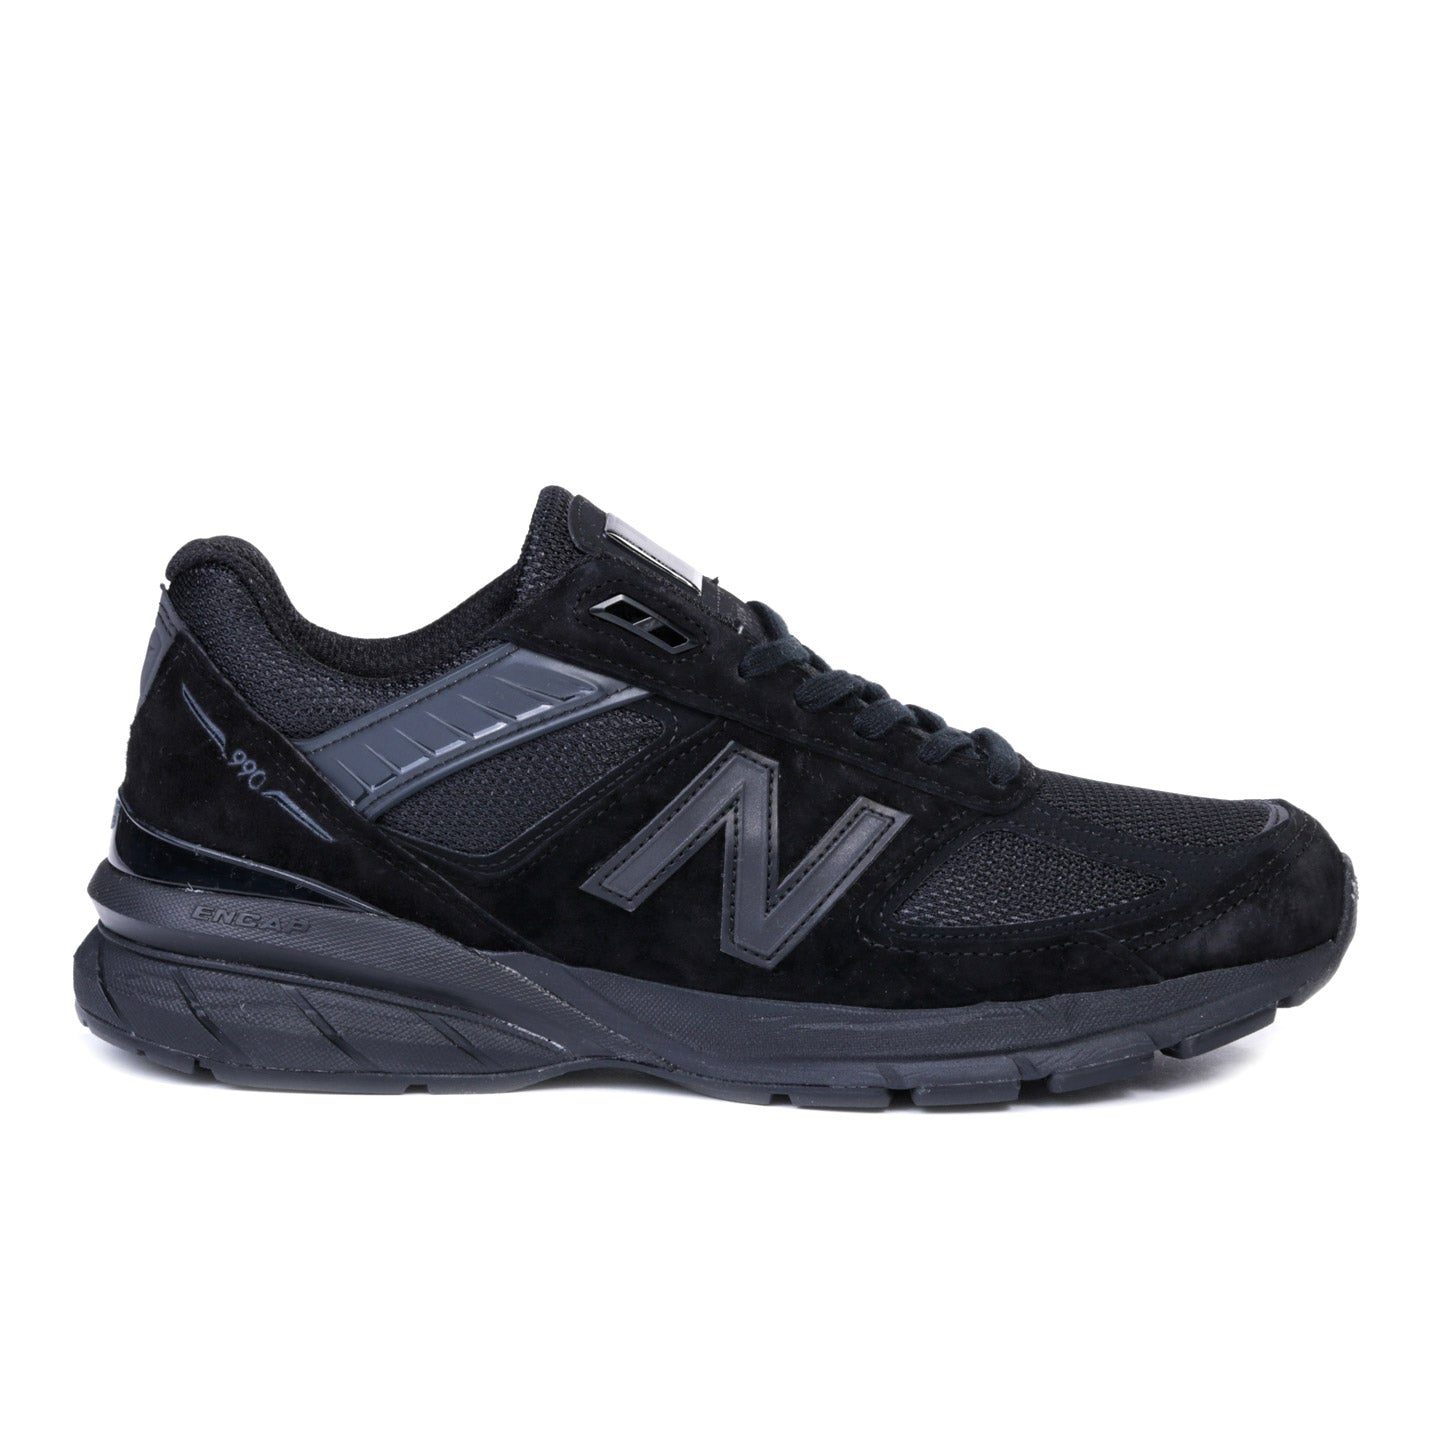 NEW BALANCE 990V5 MIUSA BLACK